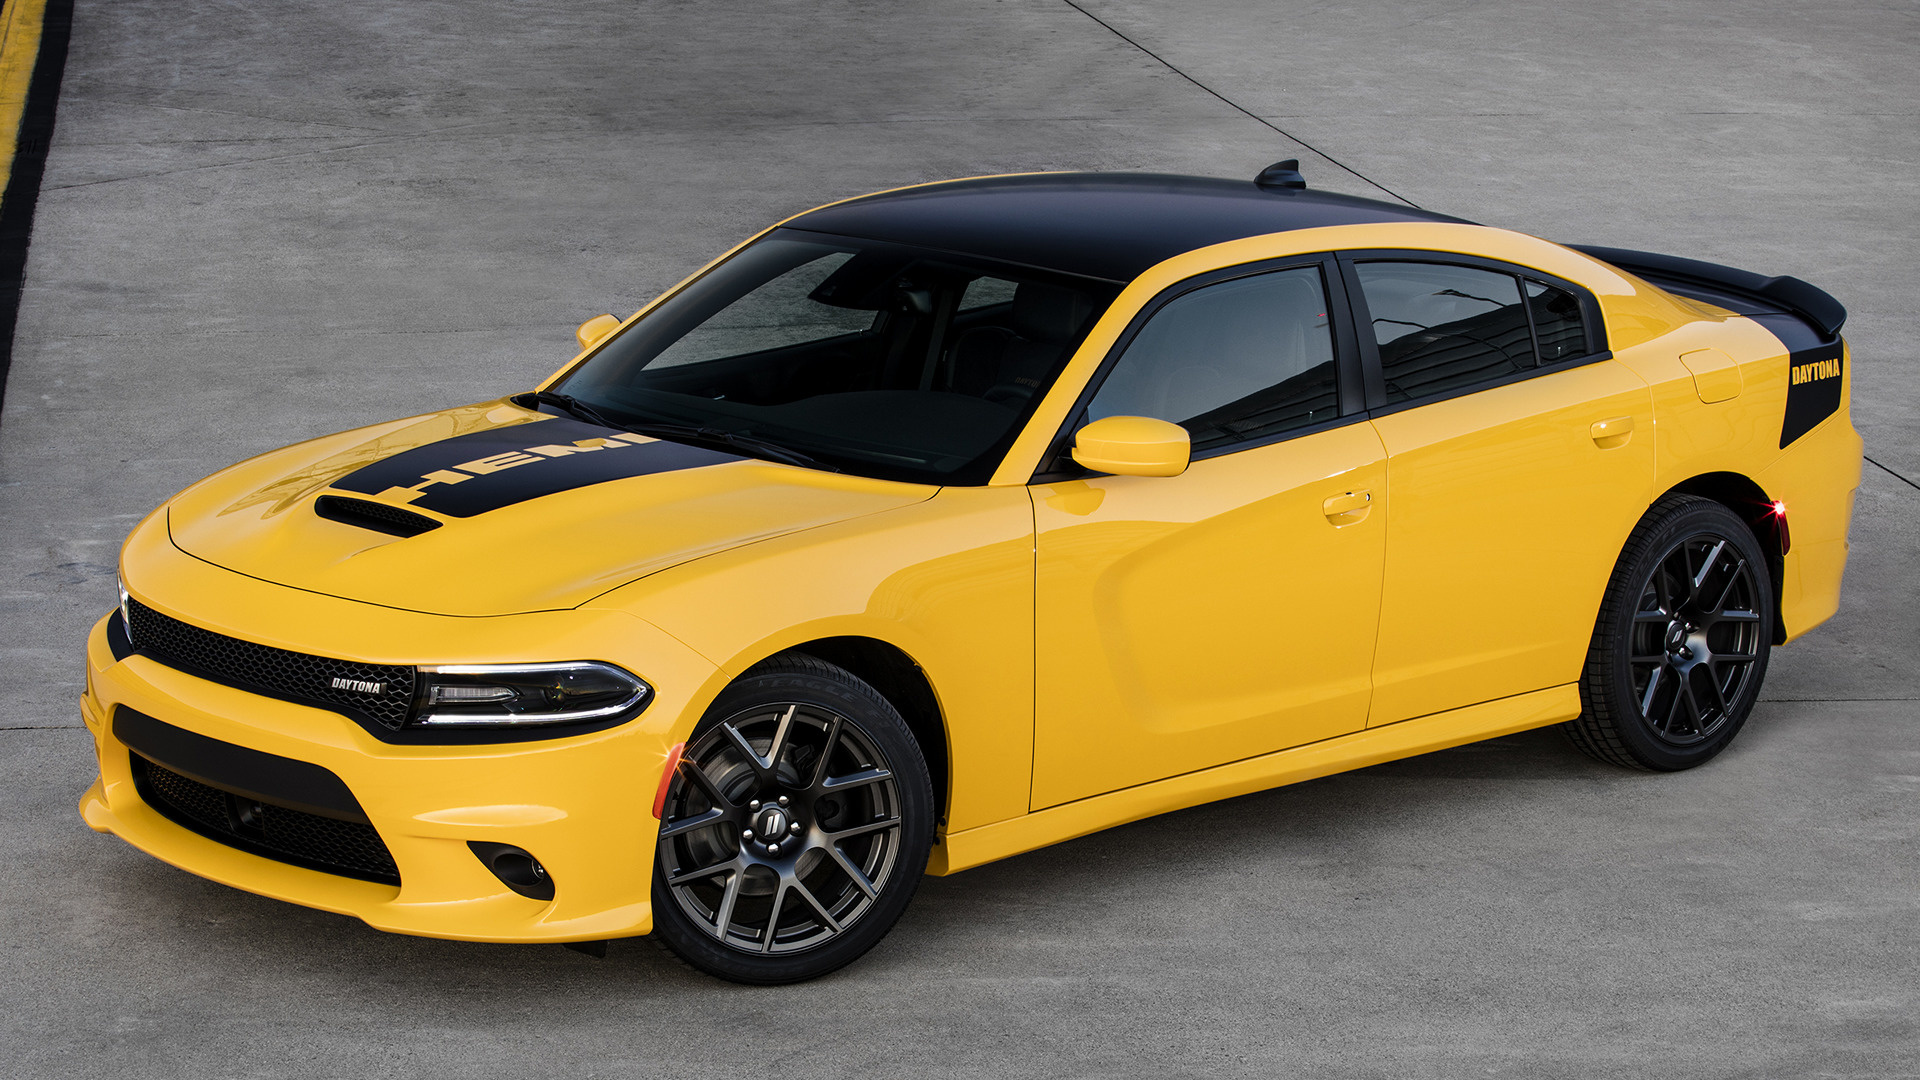 2017 Dodge Charger Daytona Wallpapers And Hd Images